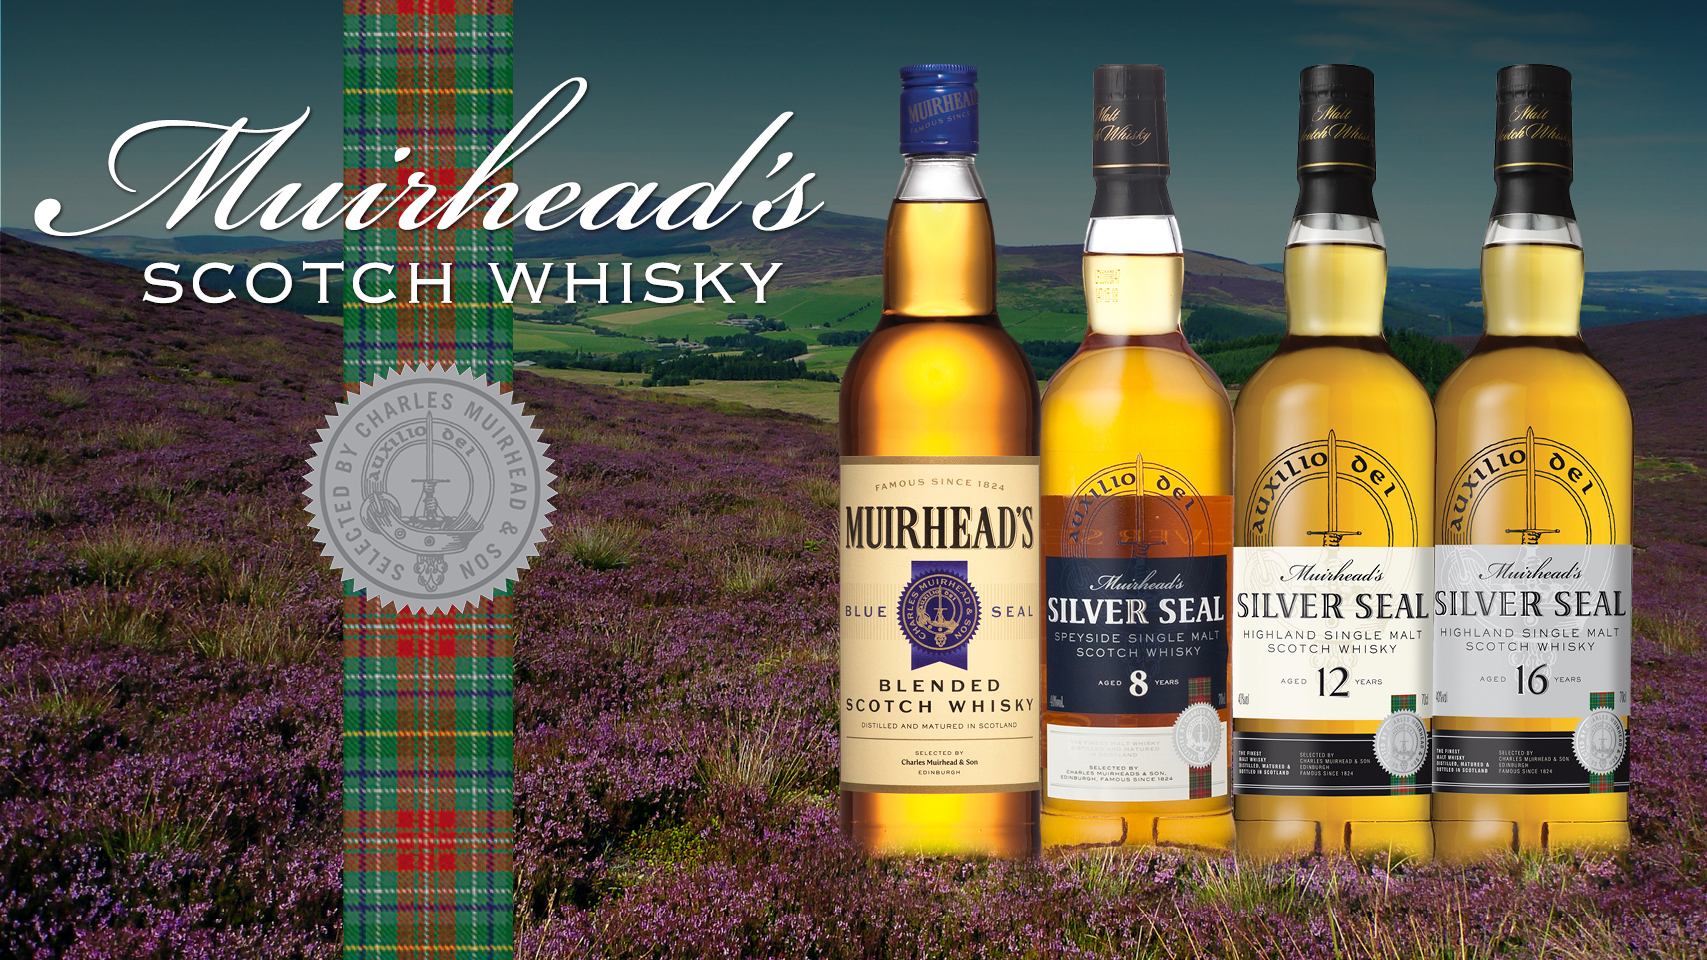 brand-page-banner-muirhead-s-v2.jpg